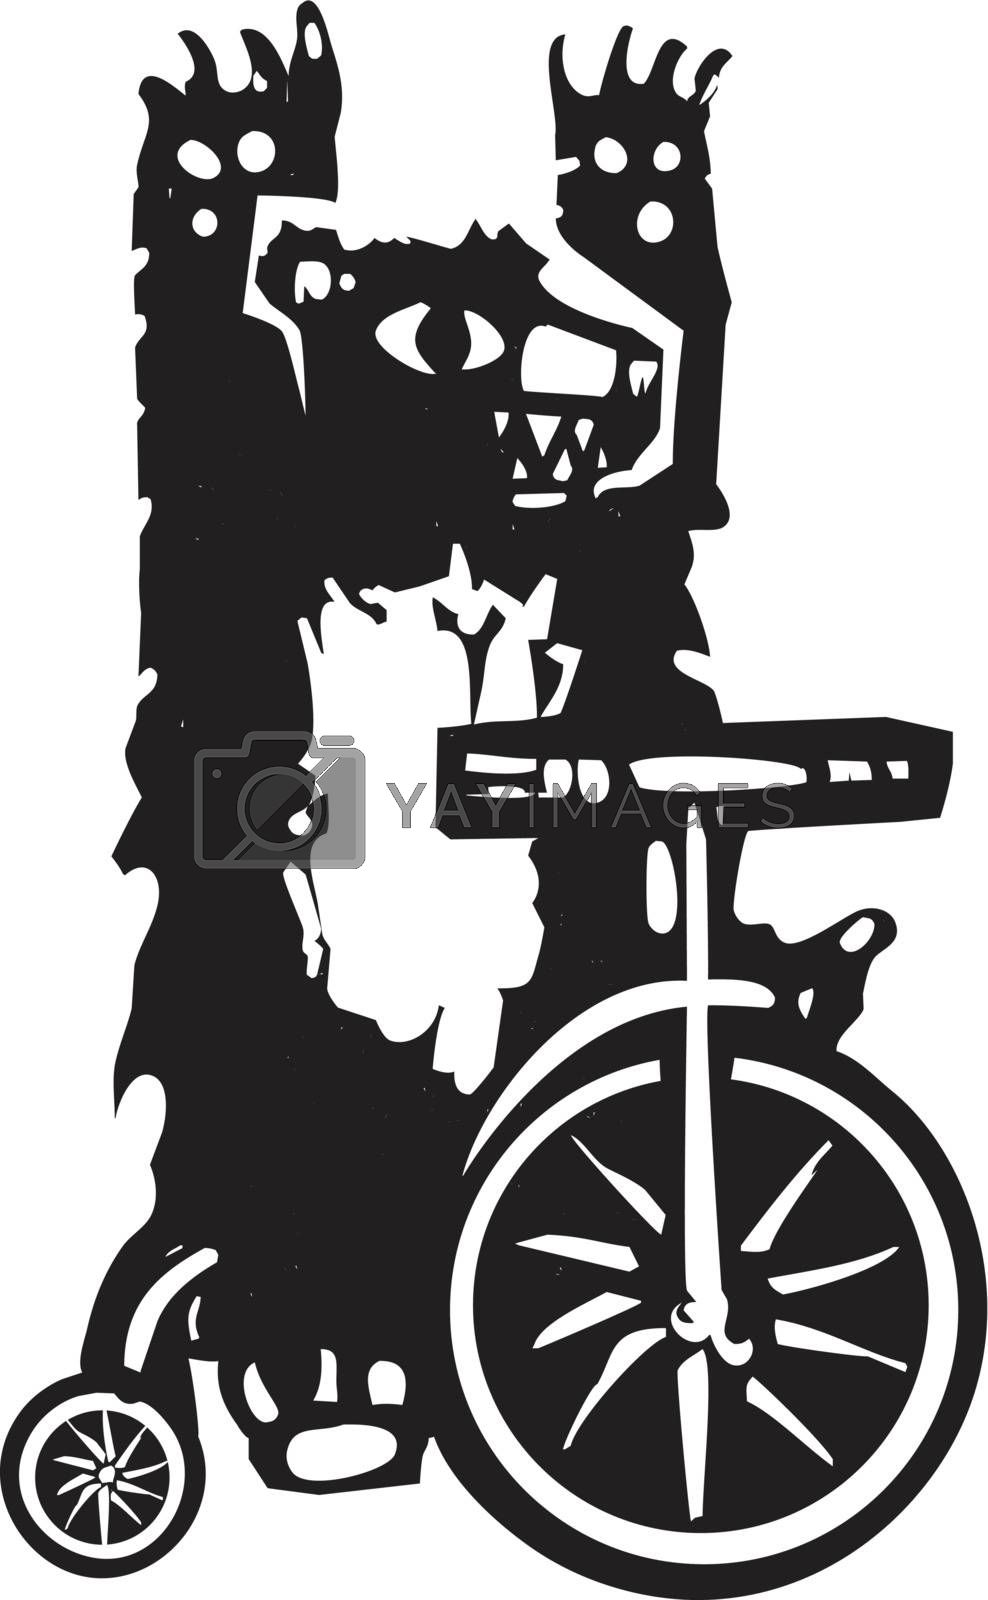 Woodcut style image of a circus bear on a tricycle.